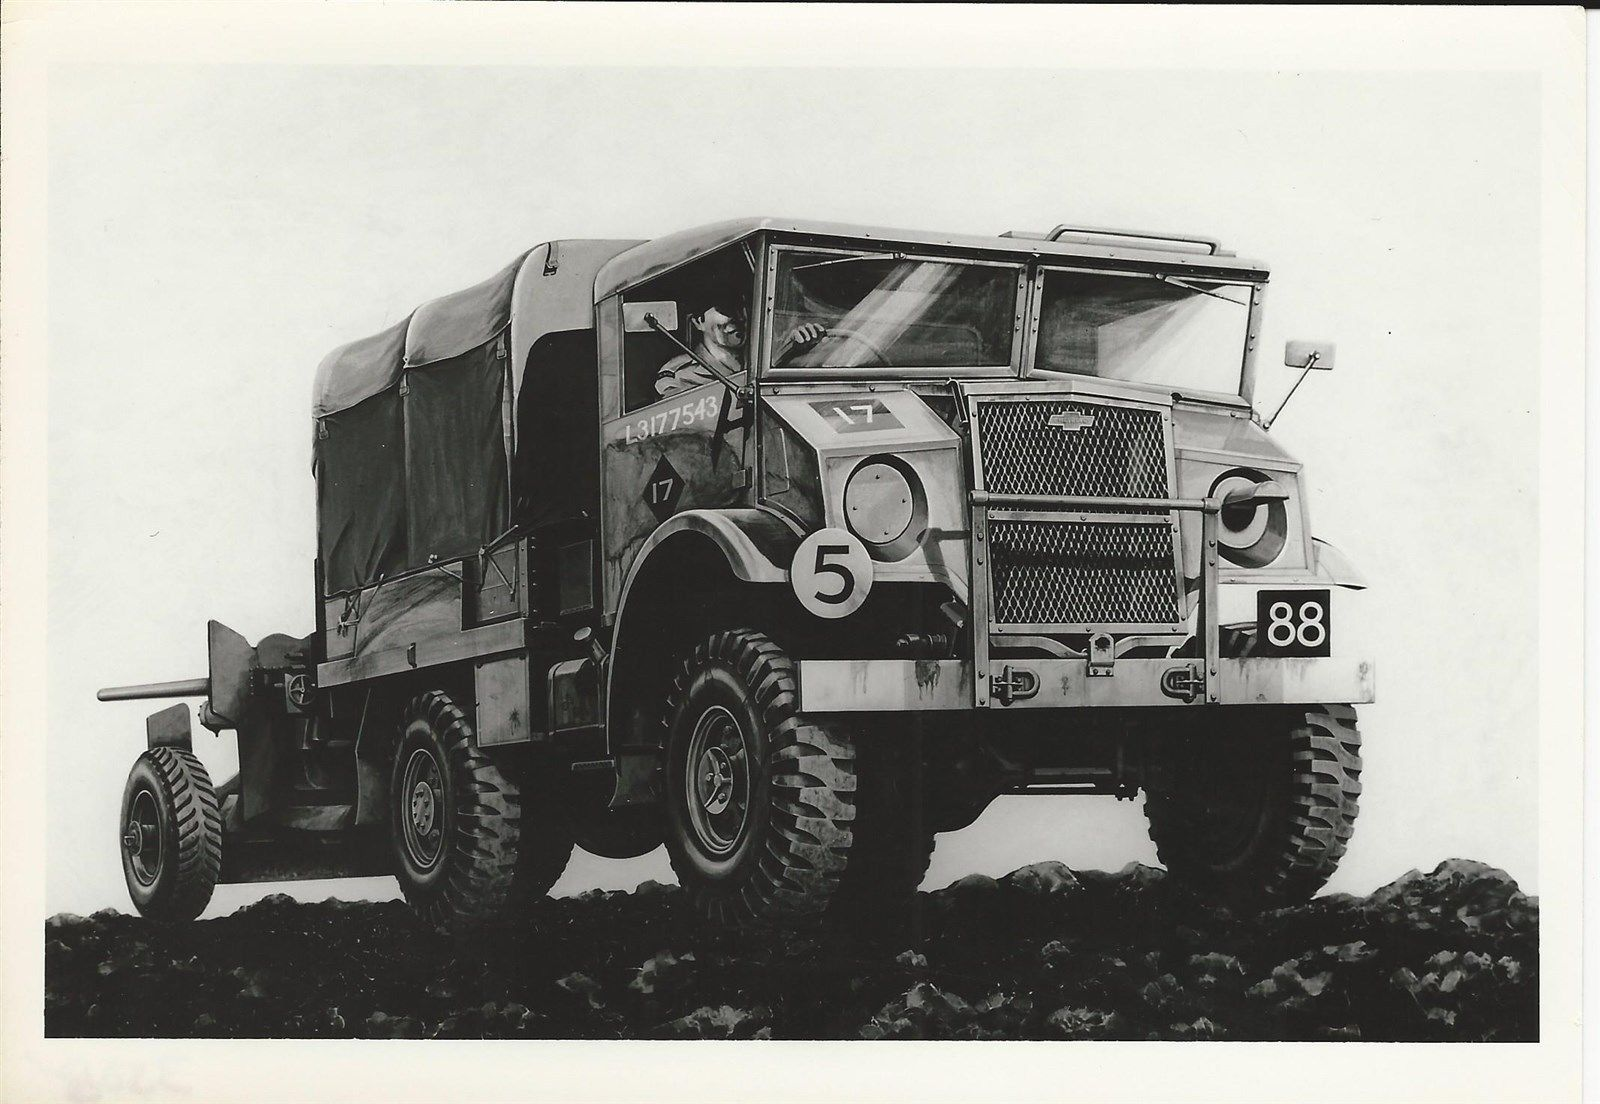 WWI CANADIAN CHEVROLET 4 x 4 MILITARY PATTERN TRUCK (CMP) - Black & White  Photo